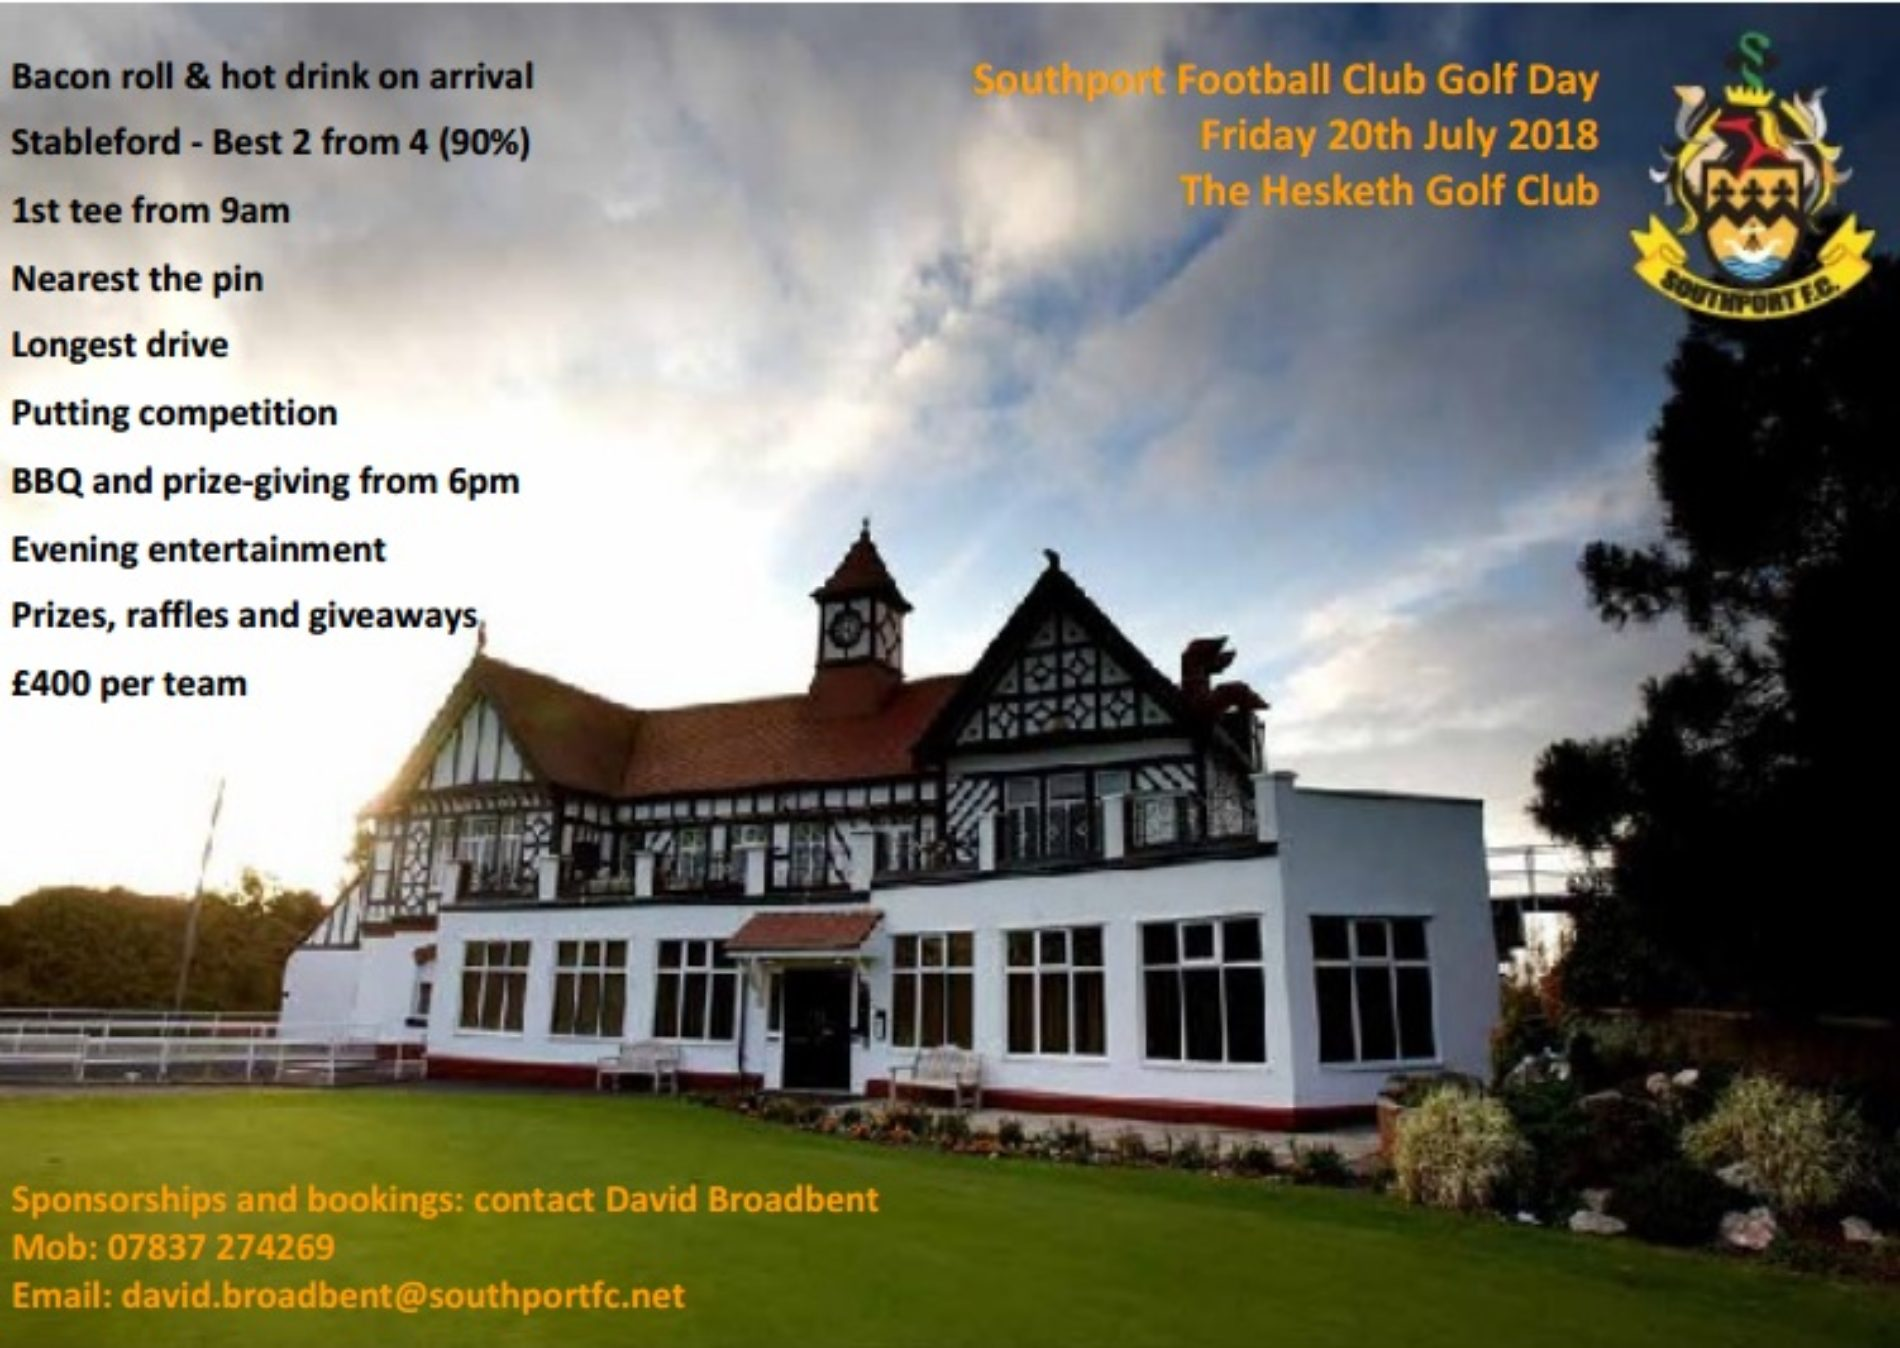 Packages are available for the Southport FC Golf Day at the Hesketh Golf Club on Friday July 20.    It promises to be a brilliant day with the first tee from 9am and the day culminating in a BBQ and prizegiving from 6pm with evening entertainment.    Players will receive a bacon roll and hot drink...